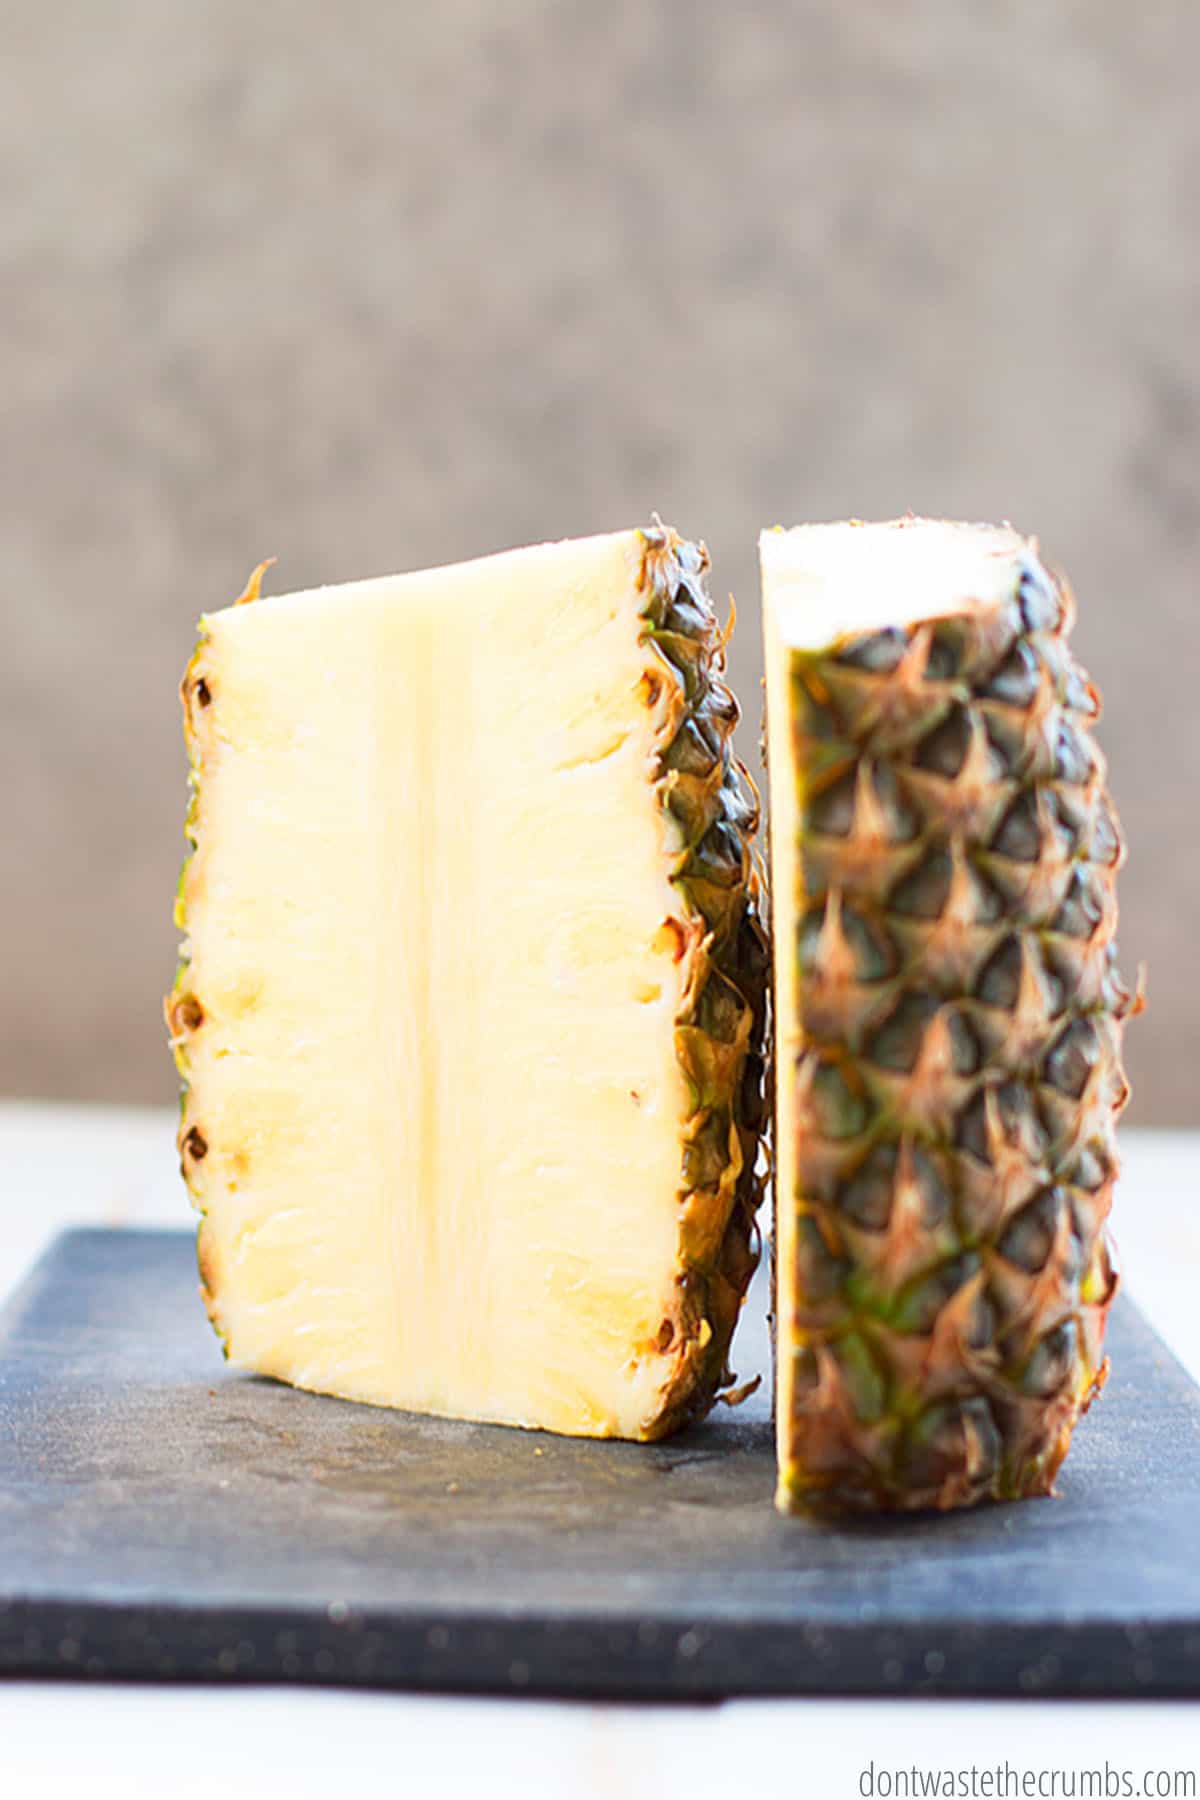 A whole pineapple cut in half with the skin on and the top and bottom and cut off.